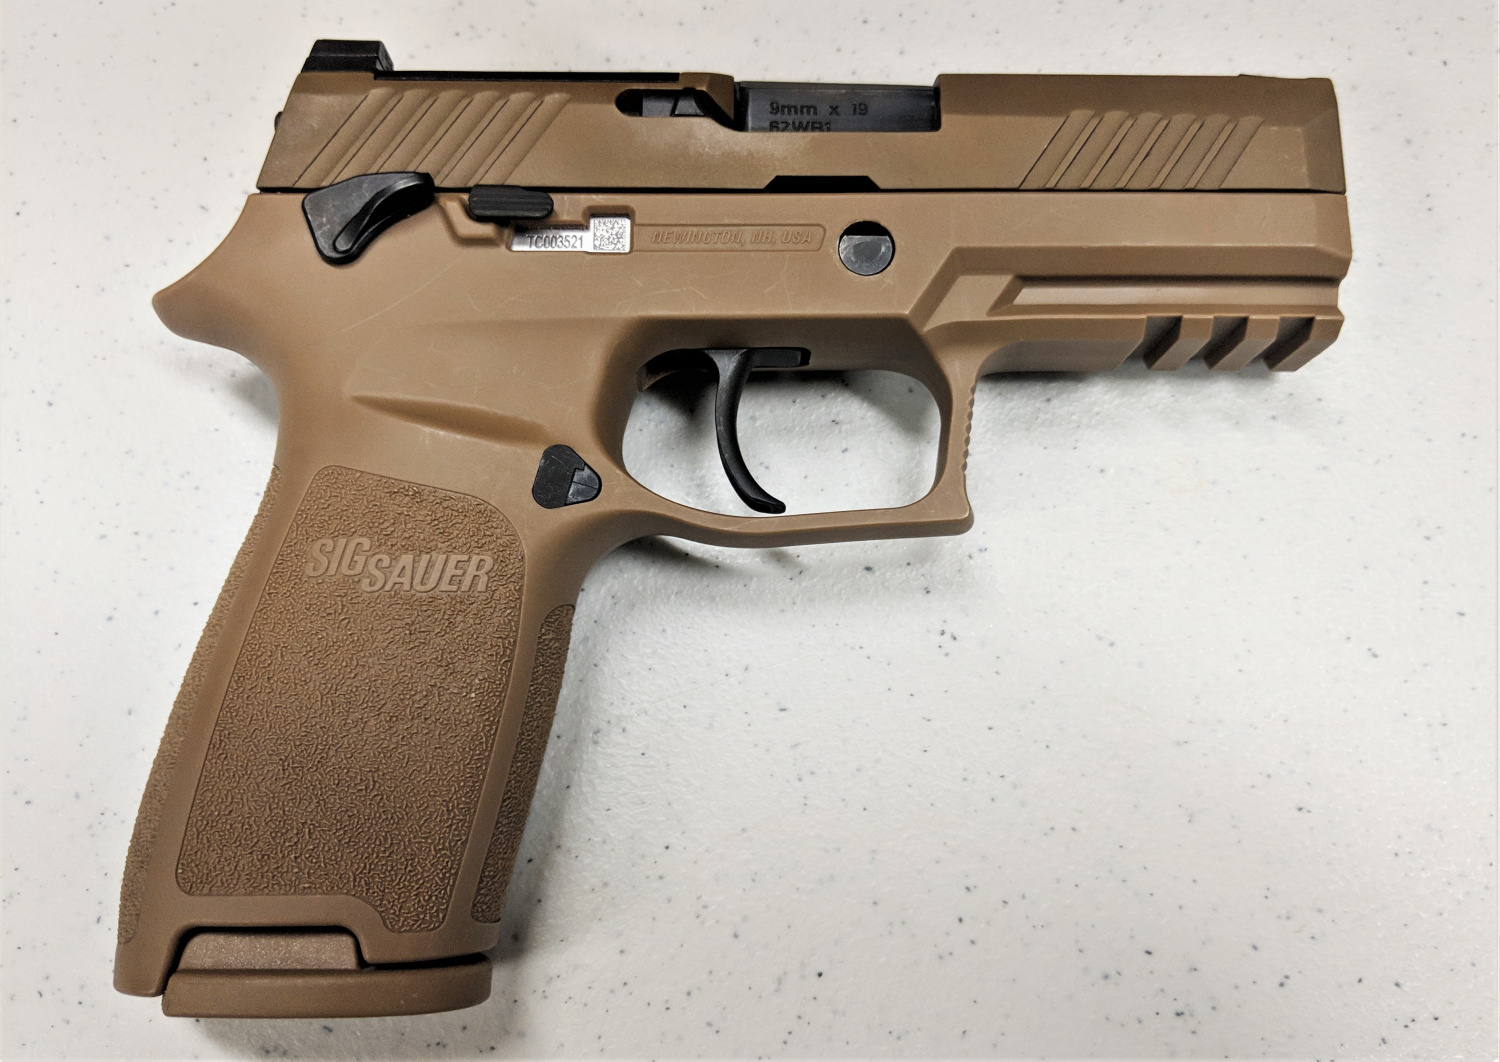 USAF Continues Security Forces Roll-out of the M18 Pistol -